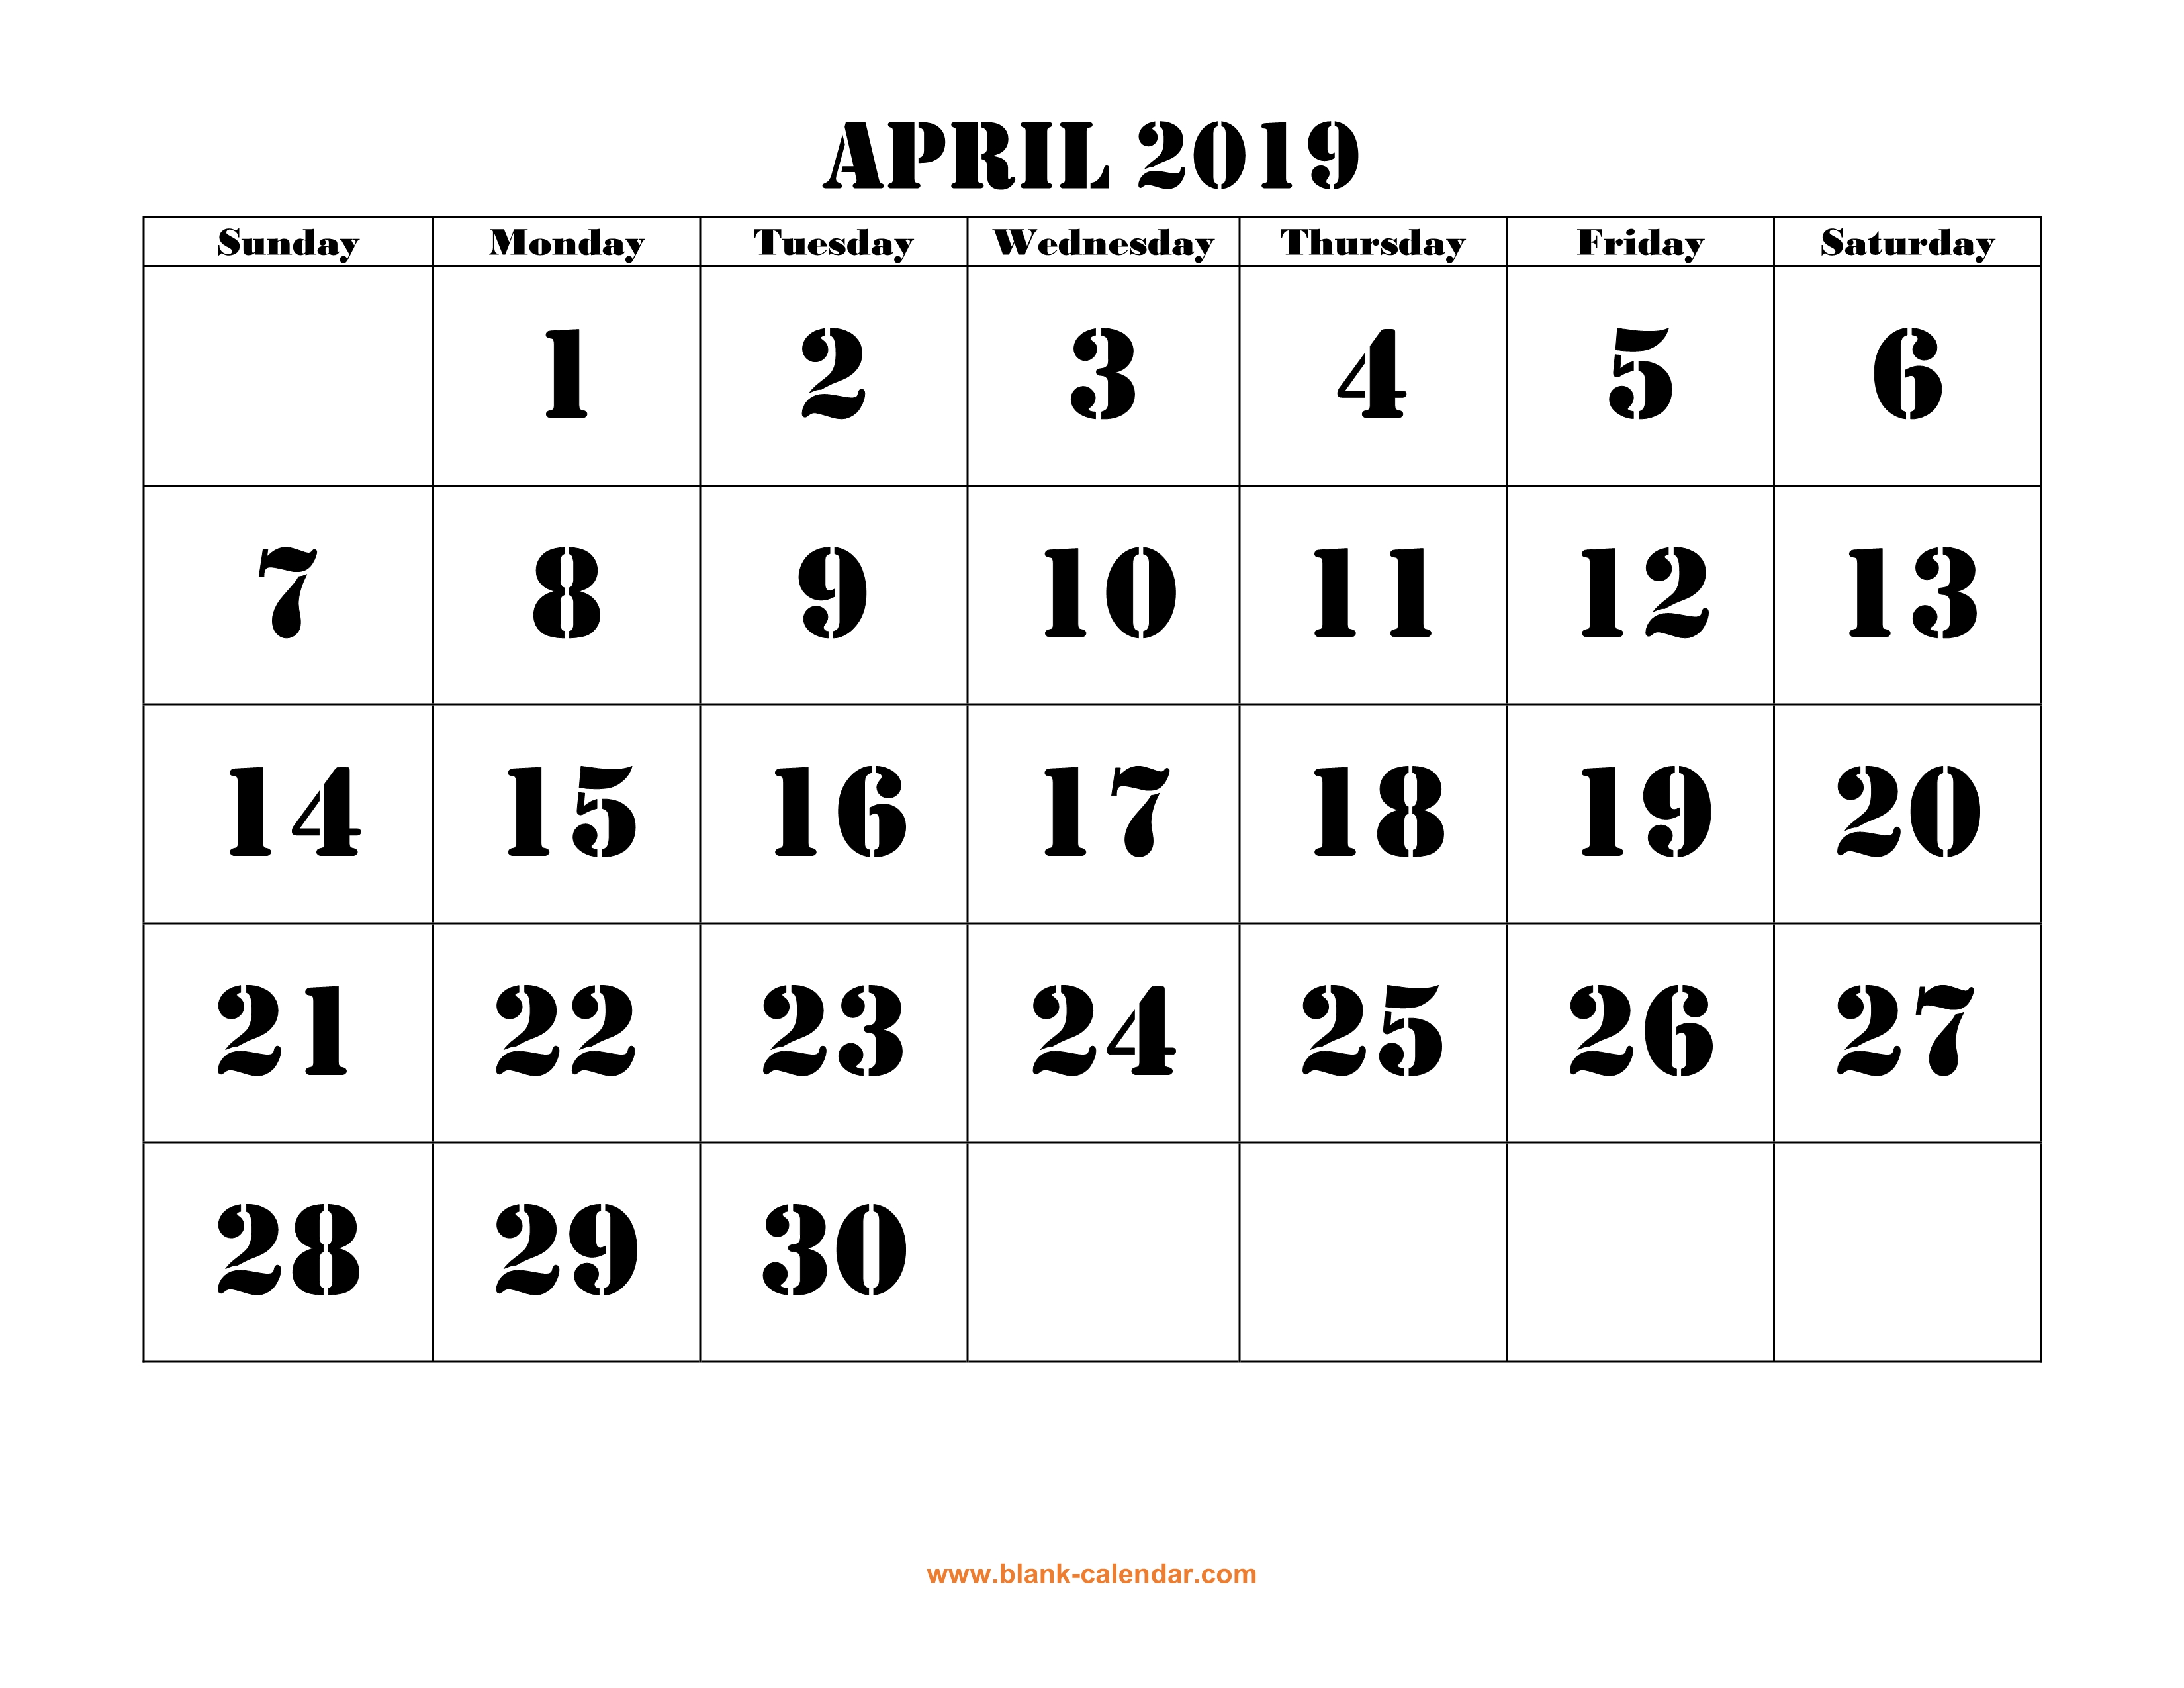 photo relating to Printable Calendar April identify April 2019 Printable Calendar Absolutely free Obtain Regular